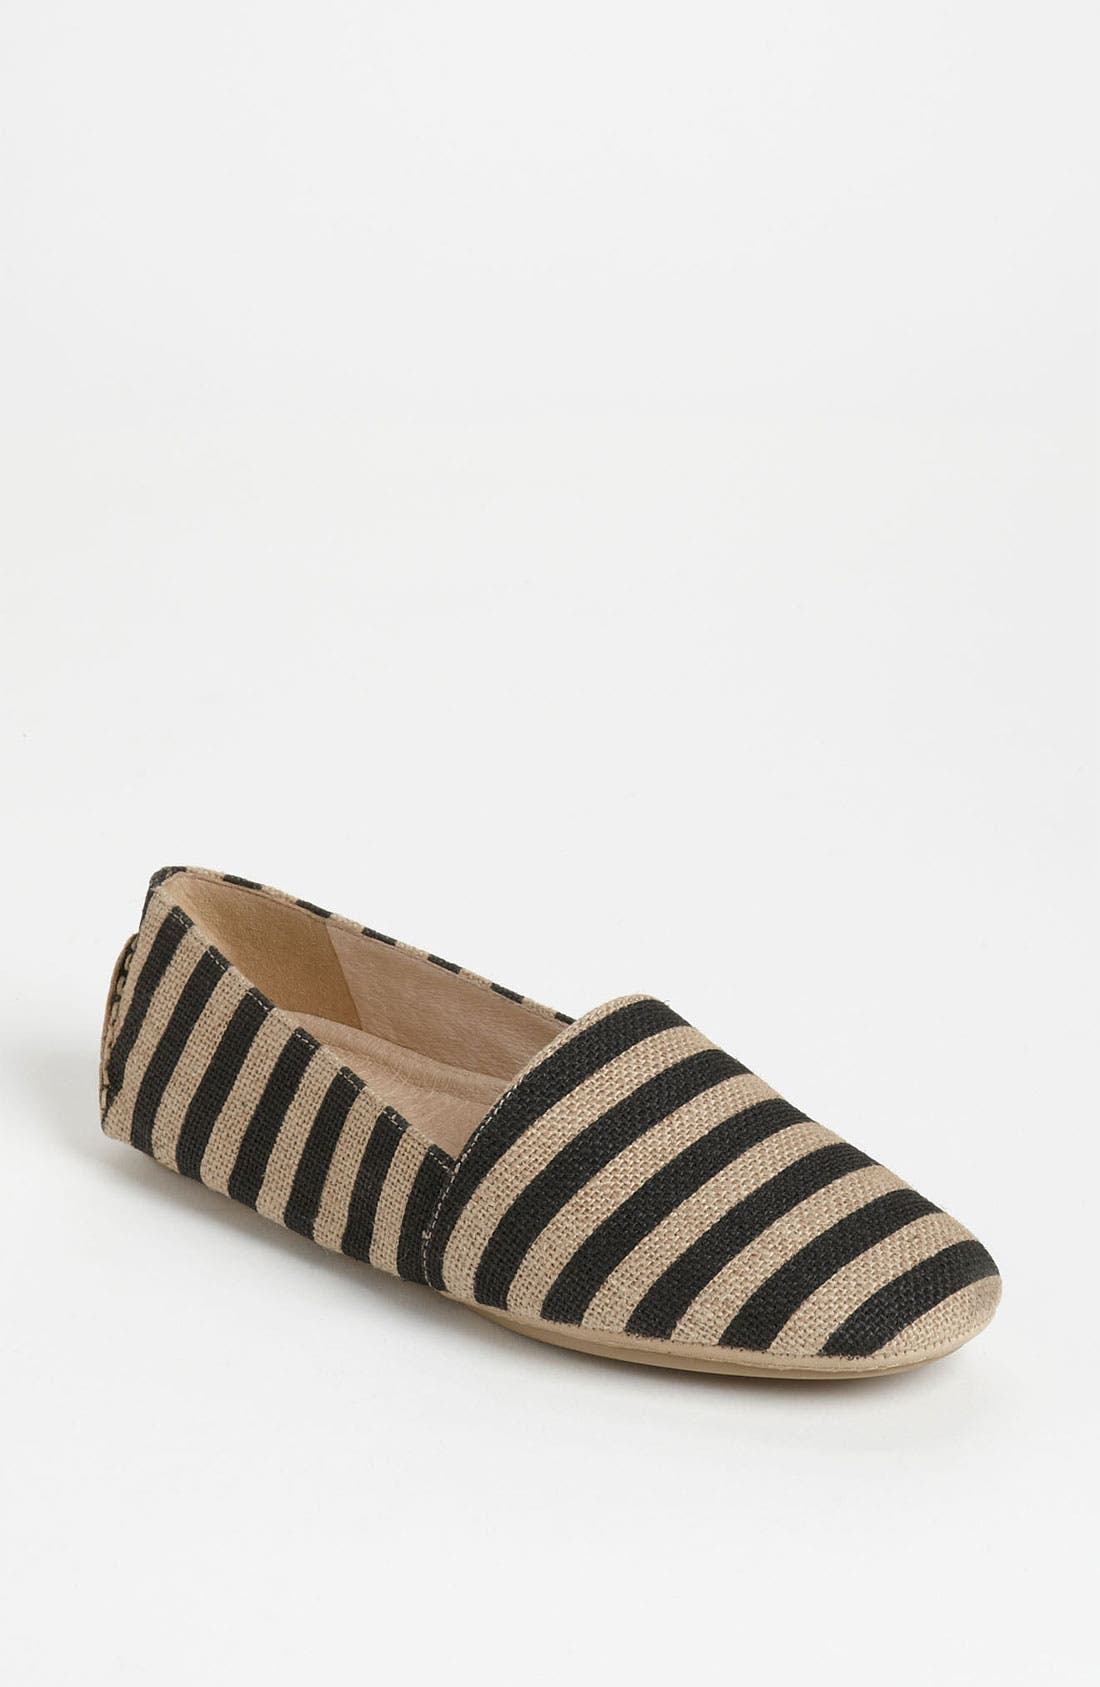 Alternate Image 1 Selected - Eileen Fisher 'Map' Flat